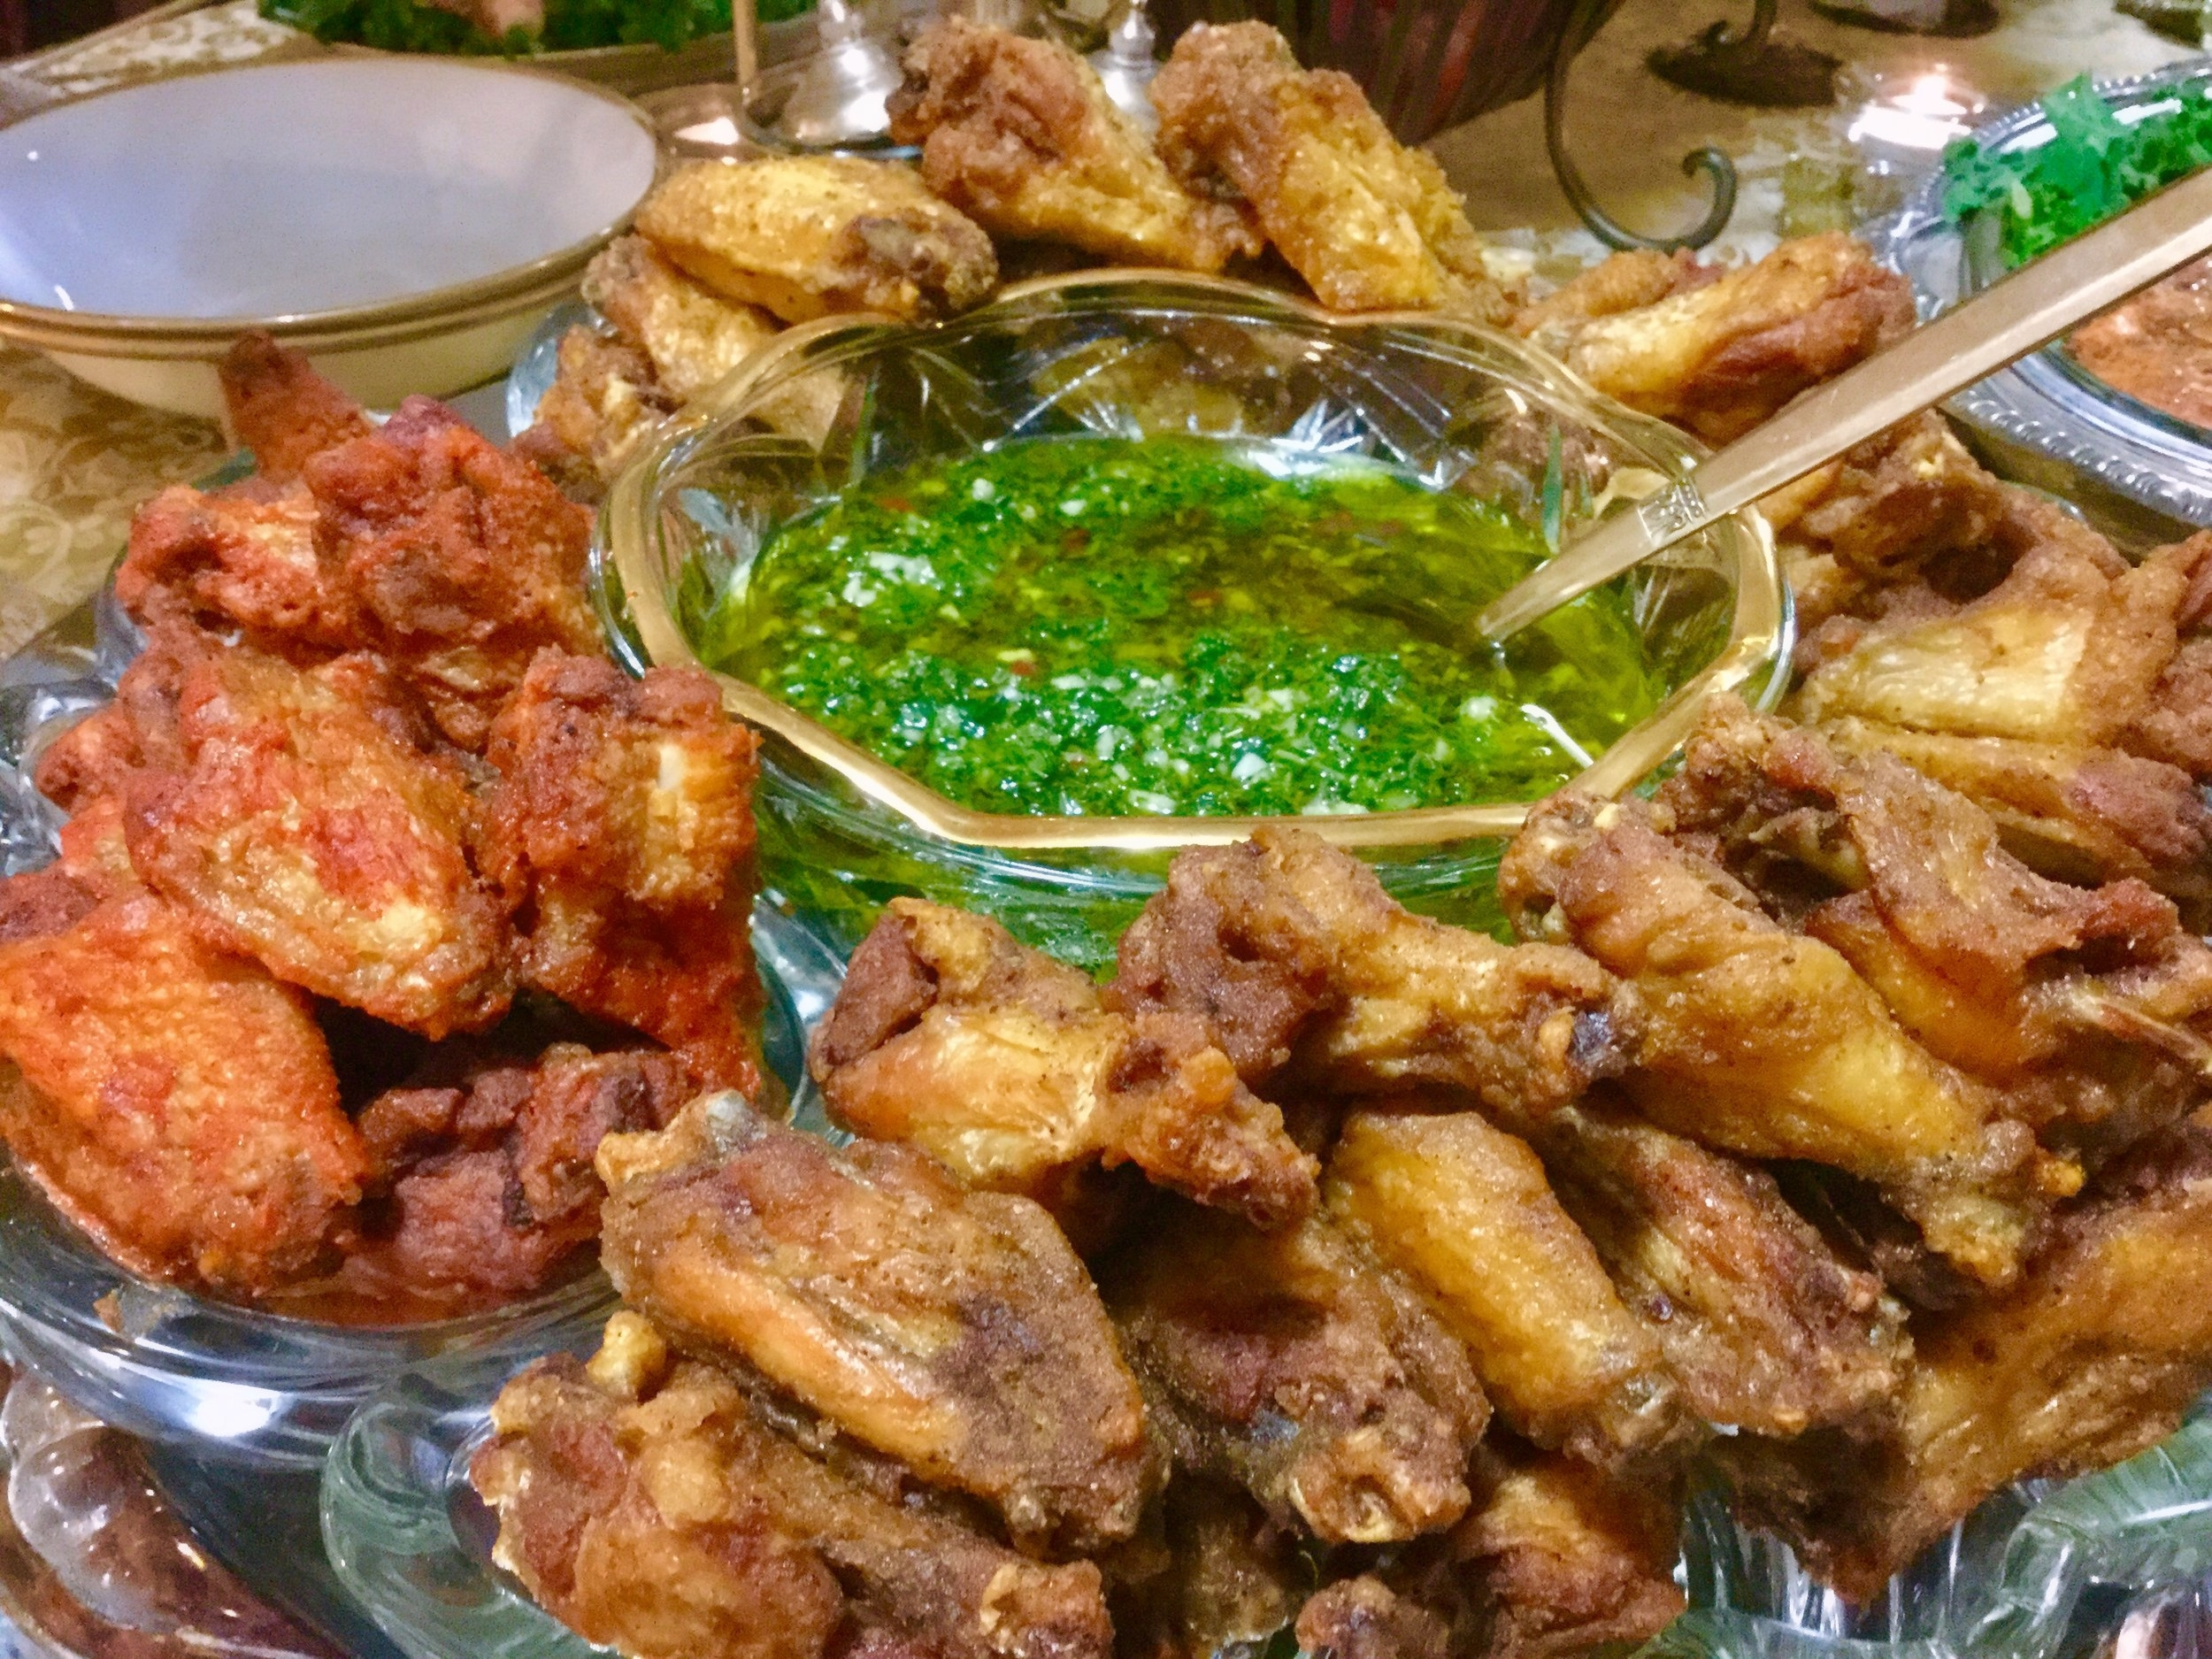 My guests could not stop talking about my home-made Chimichurri Sauce (that green stuff in the middle)